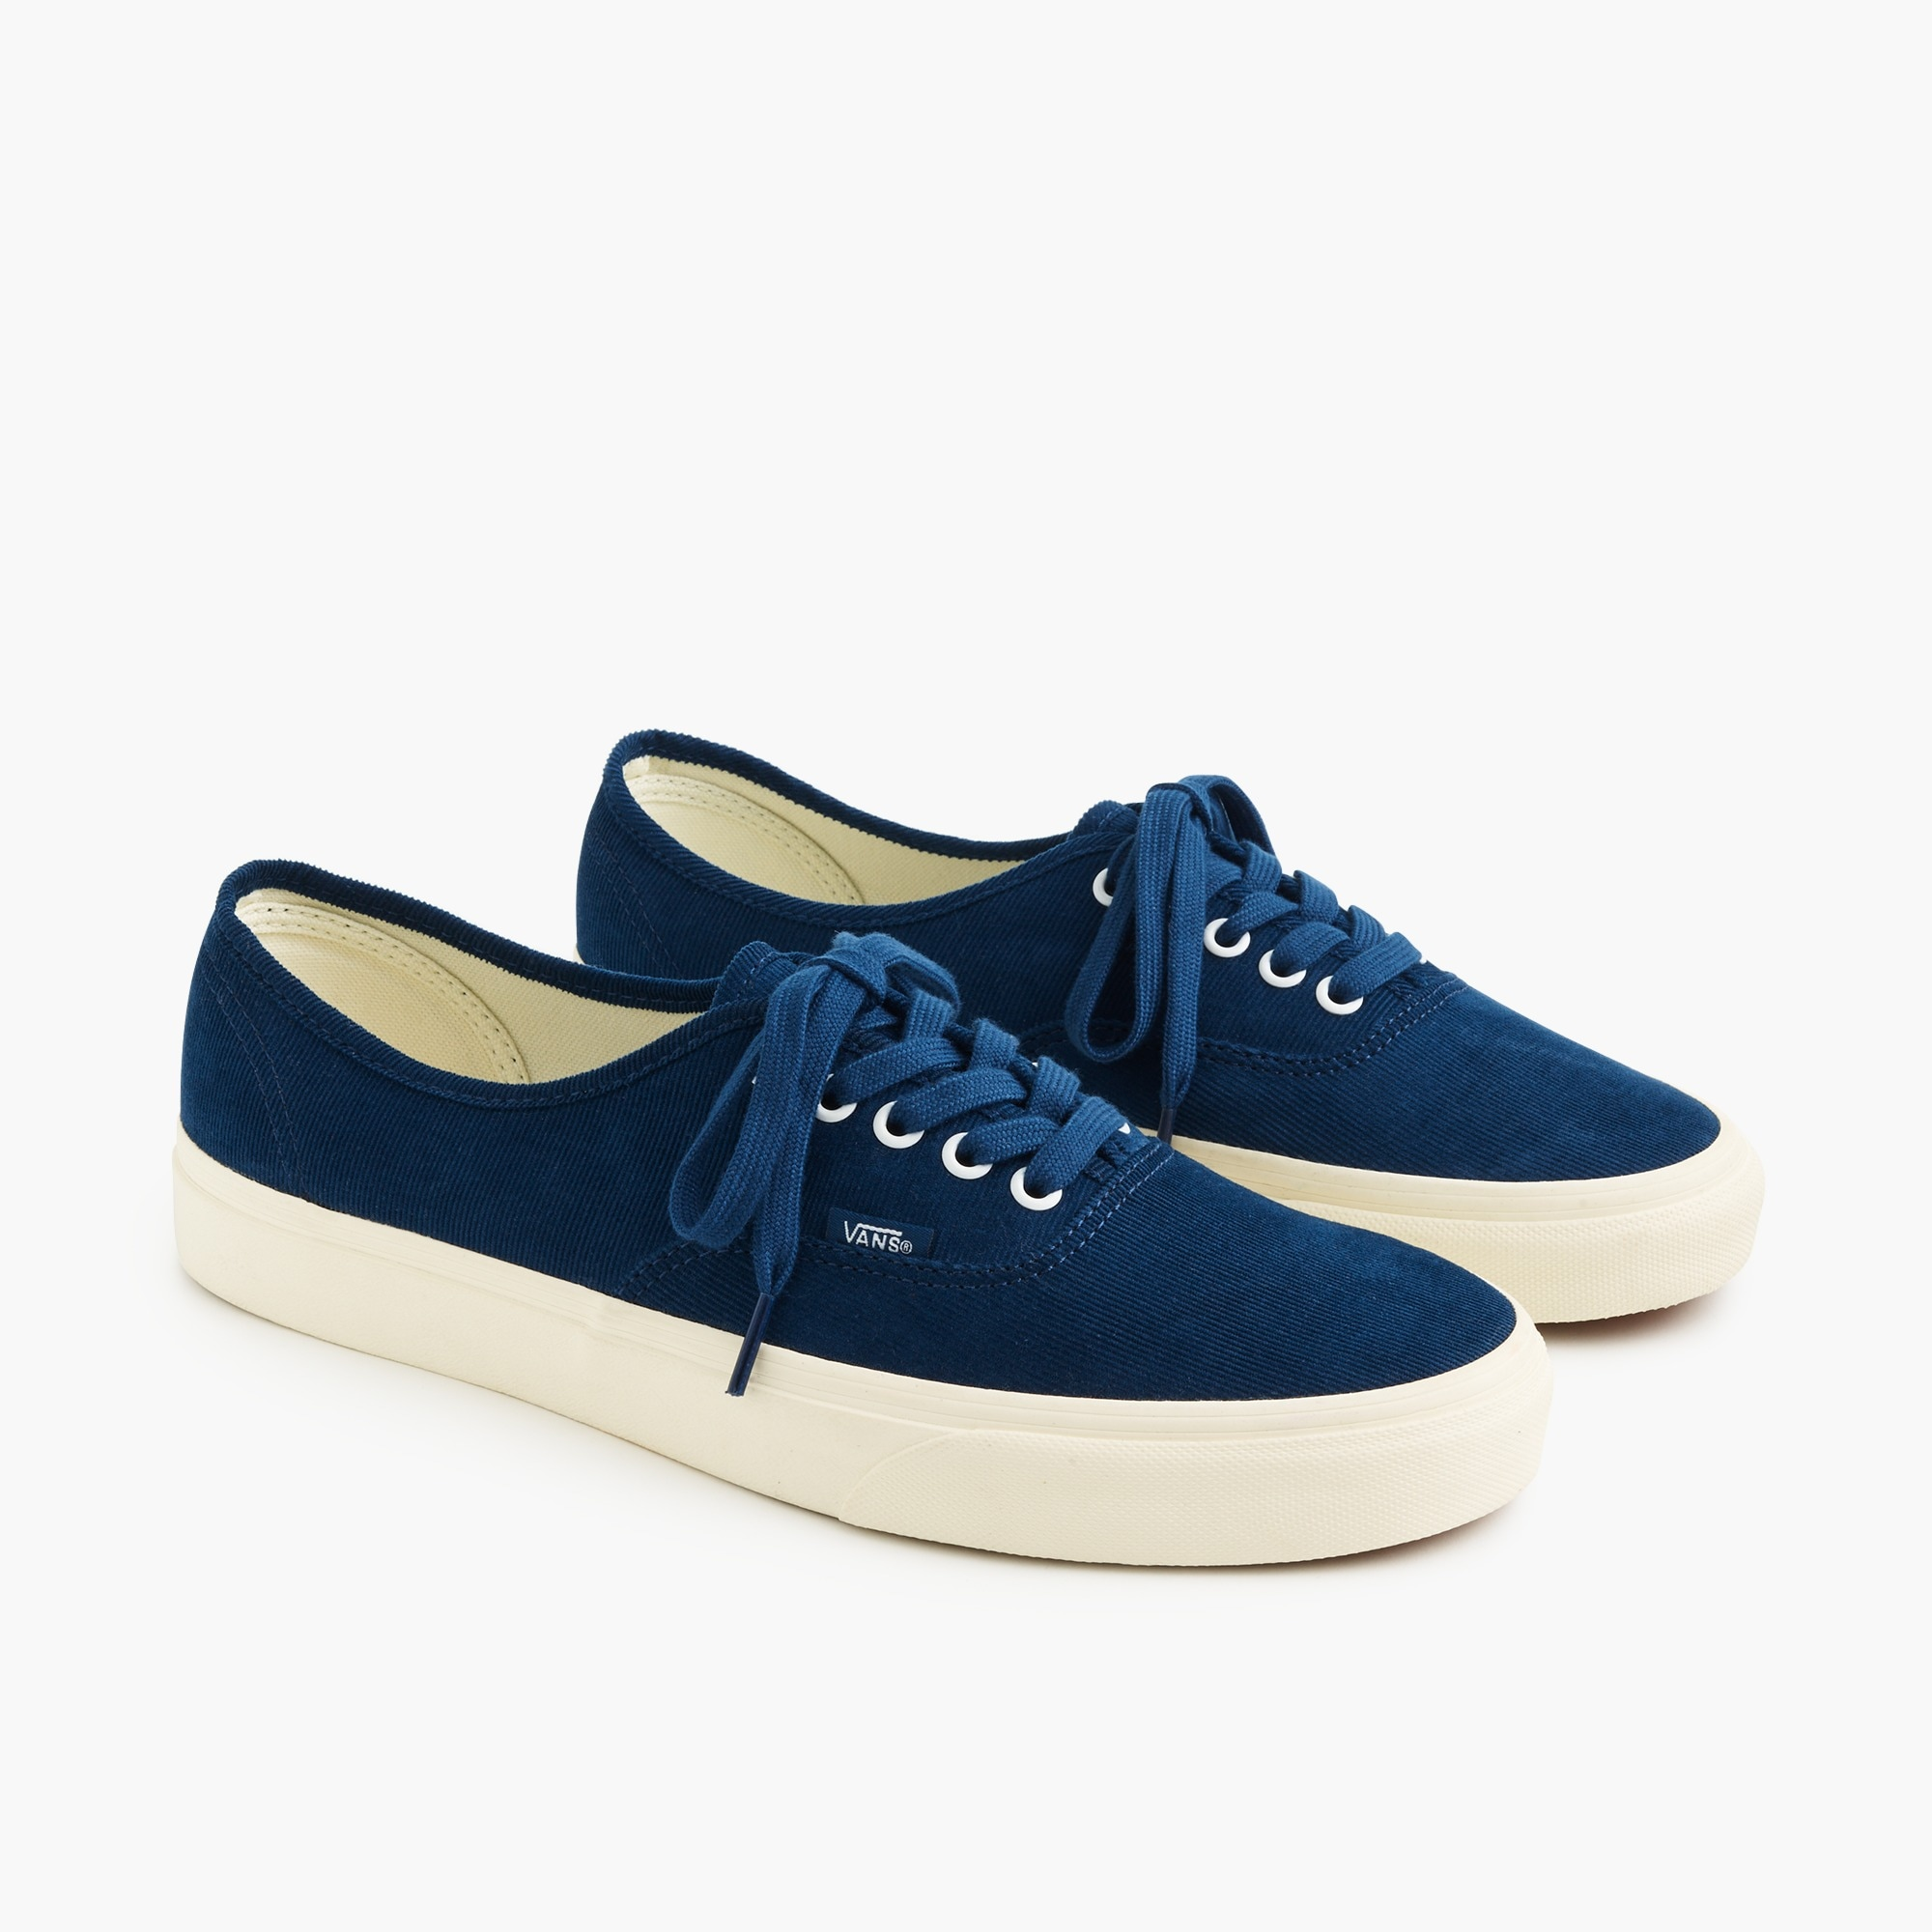 mens Vans® for J.Crew Authentic sneakers in Bedford cord